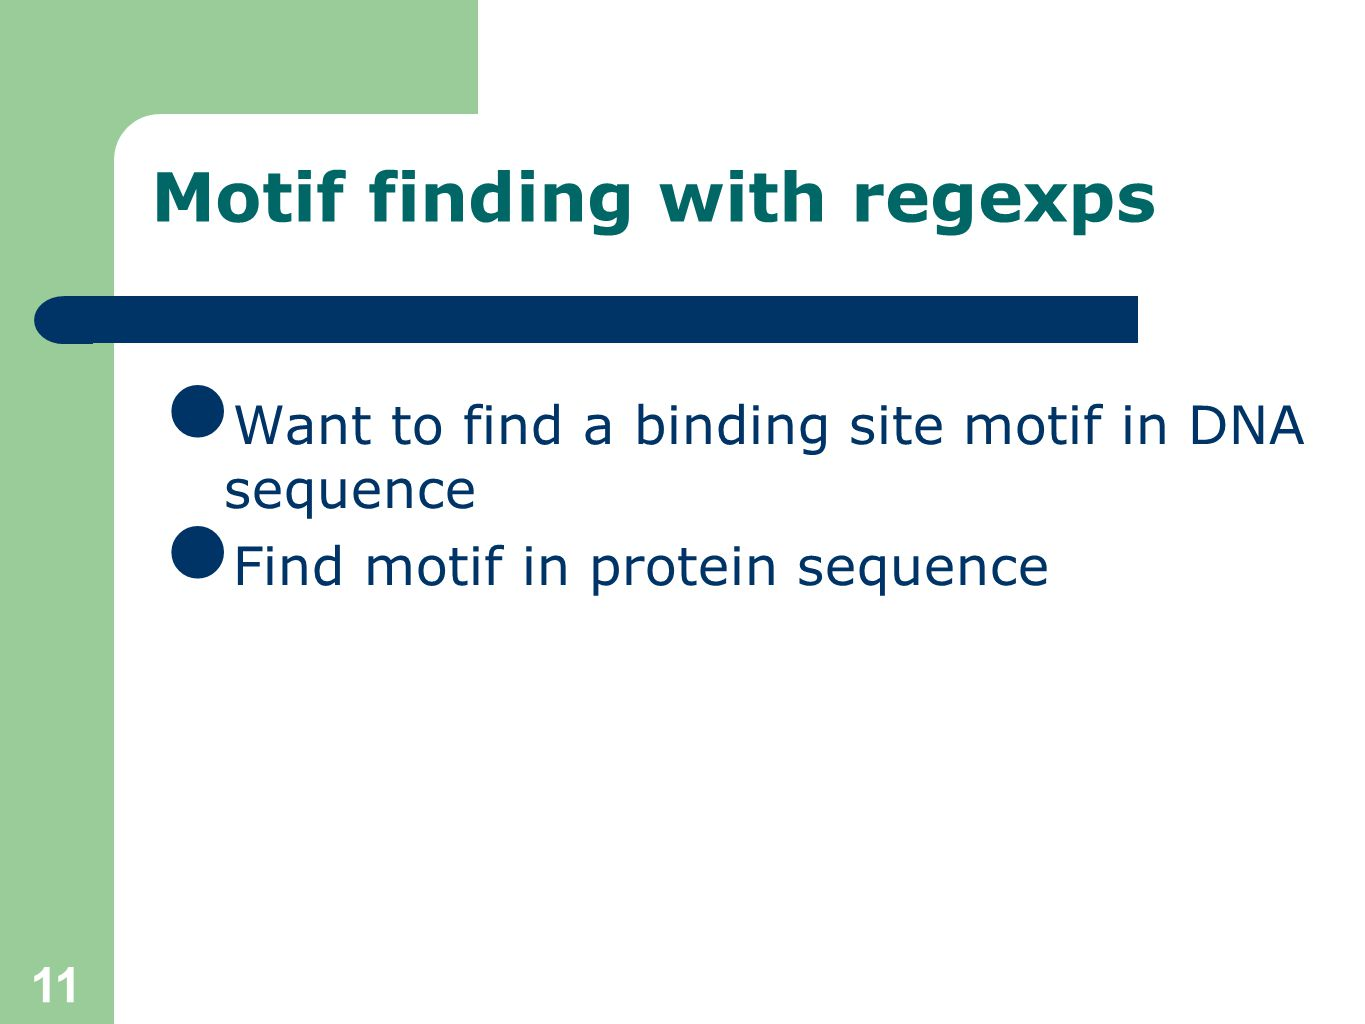 11 Motif finding with regexps Want to find a binding site motif in DNA sequence Find motif in protein sequence